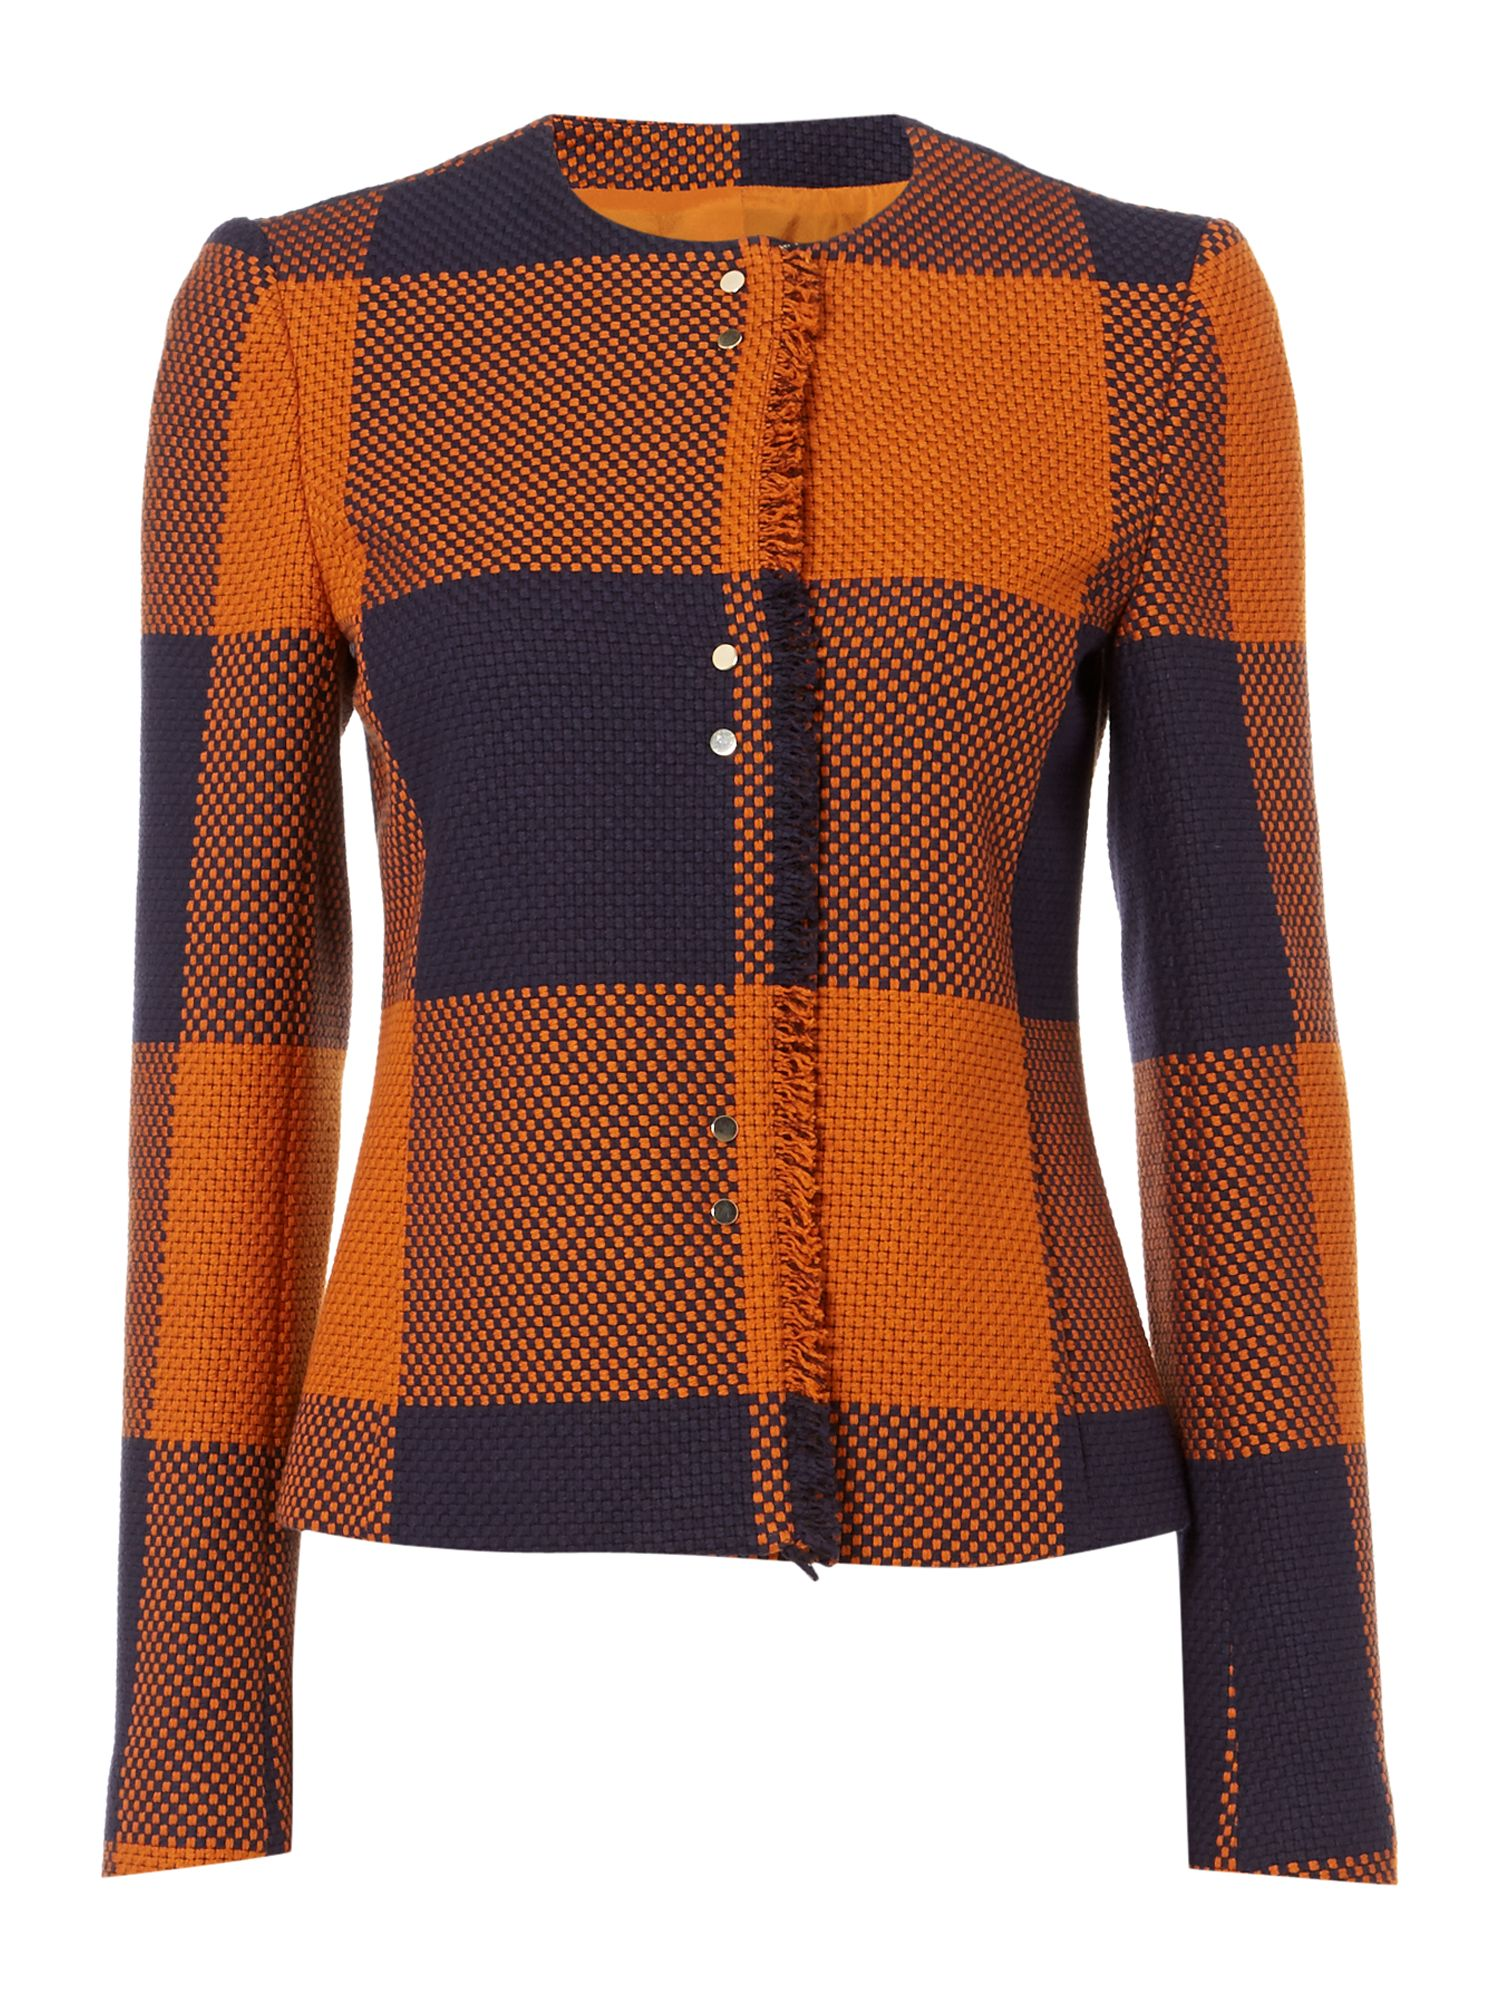 Hugo Boss Karolie Check Long Sleeve Jacket, Rust